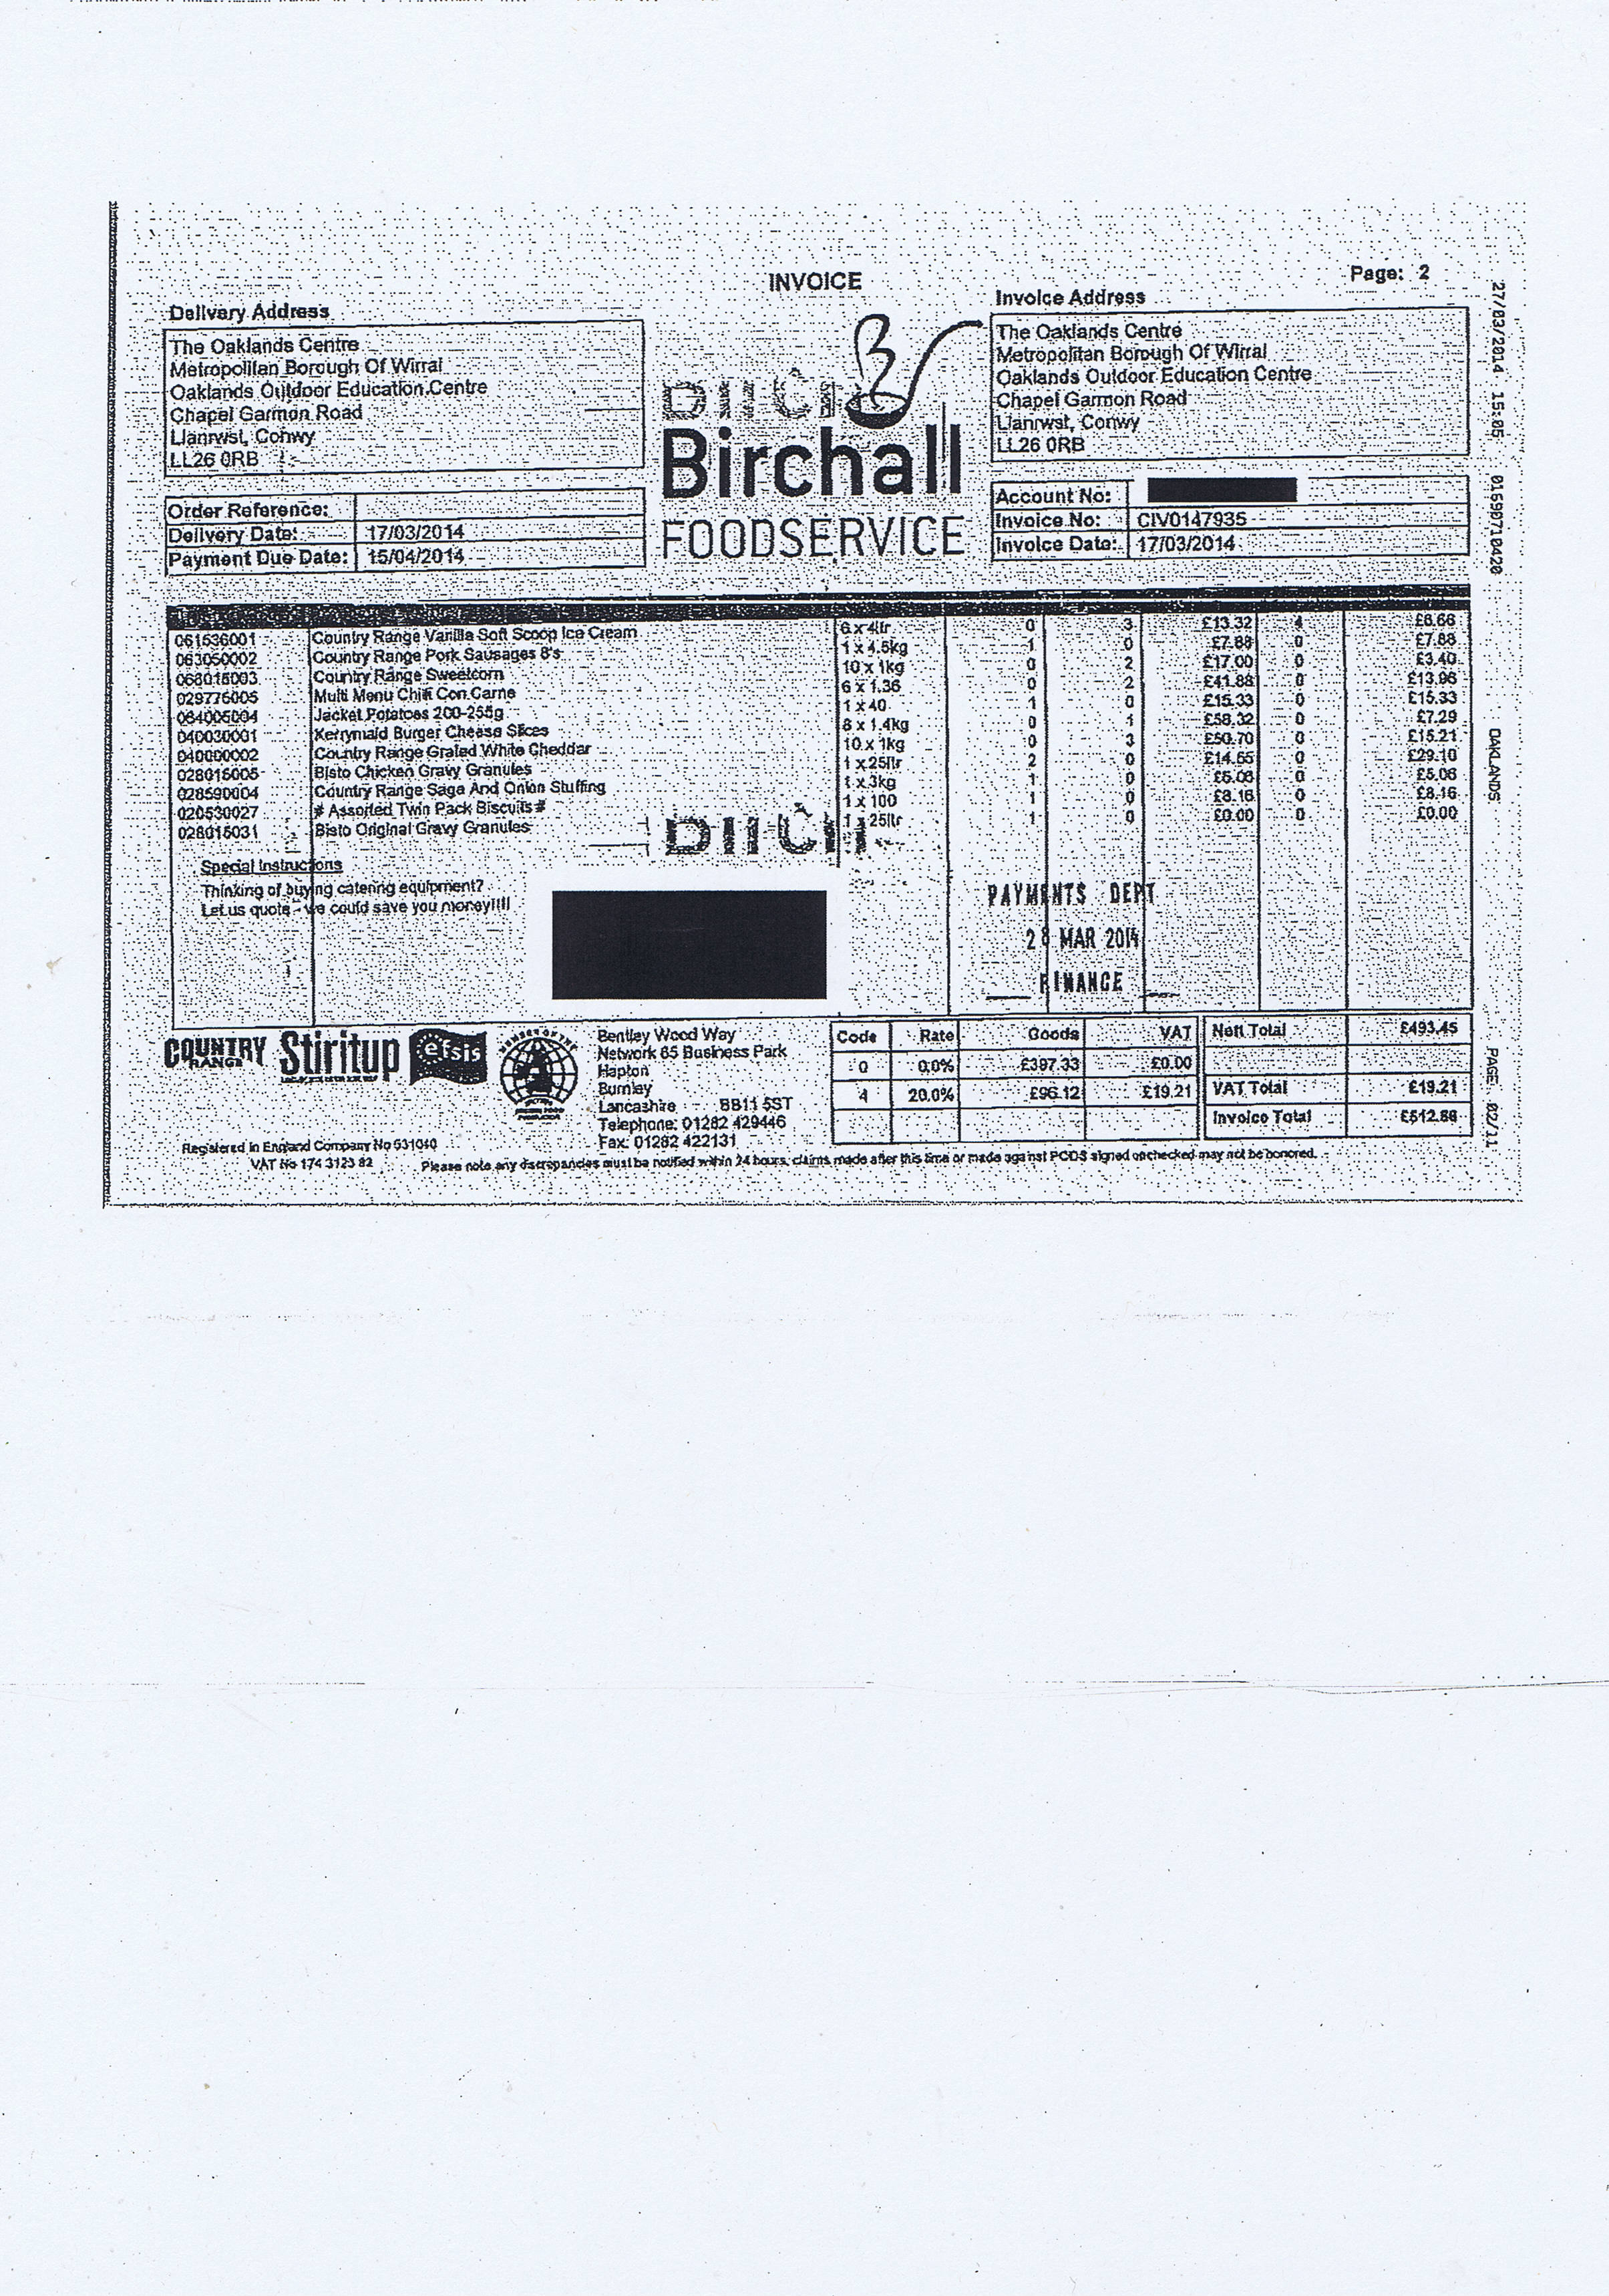 Wirral Council invoice 74 Birchall Foodservice £512.86 page 2 of 2